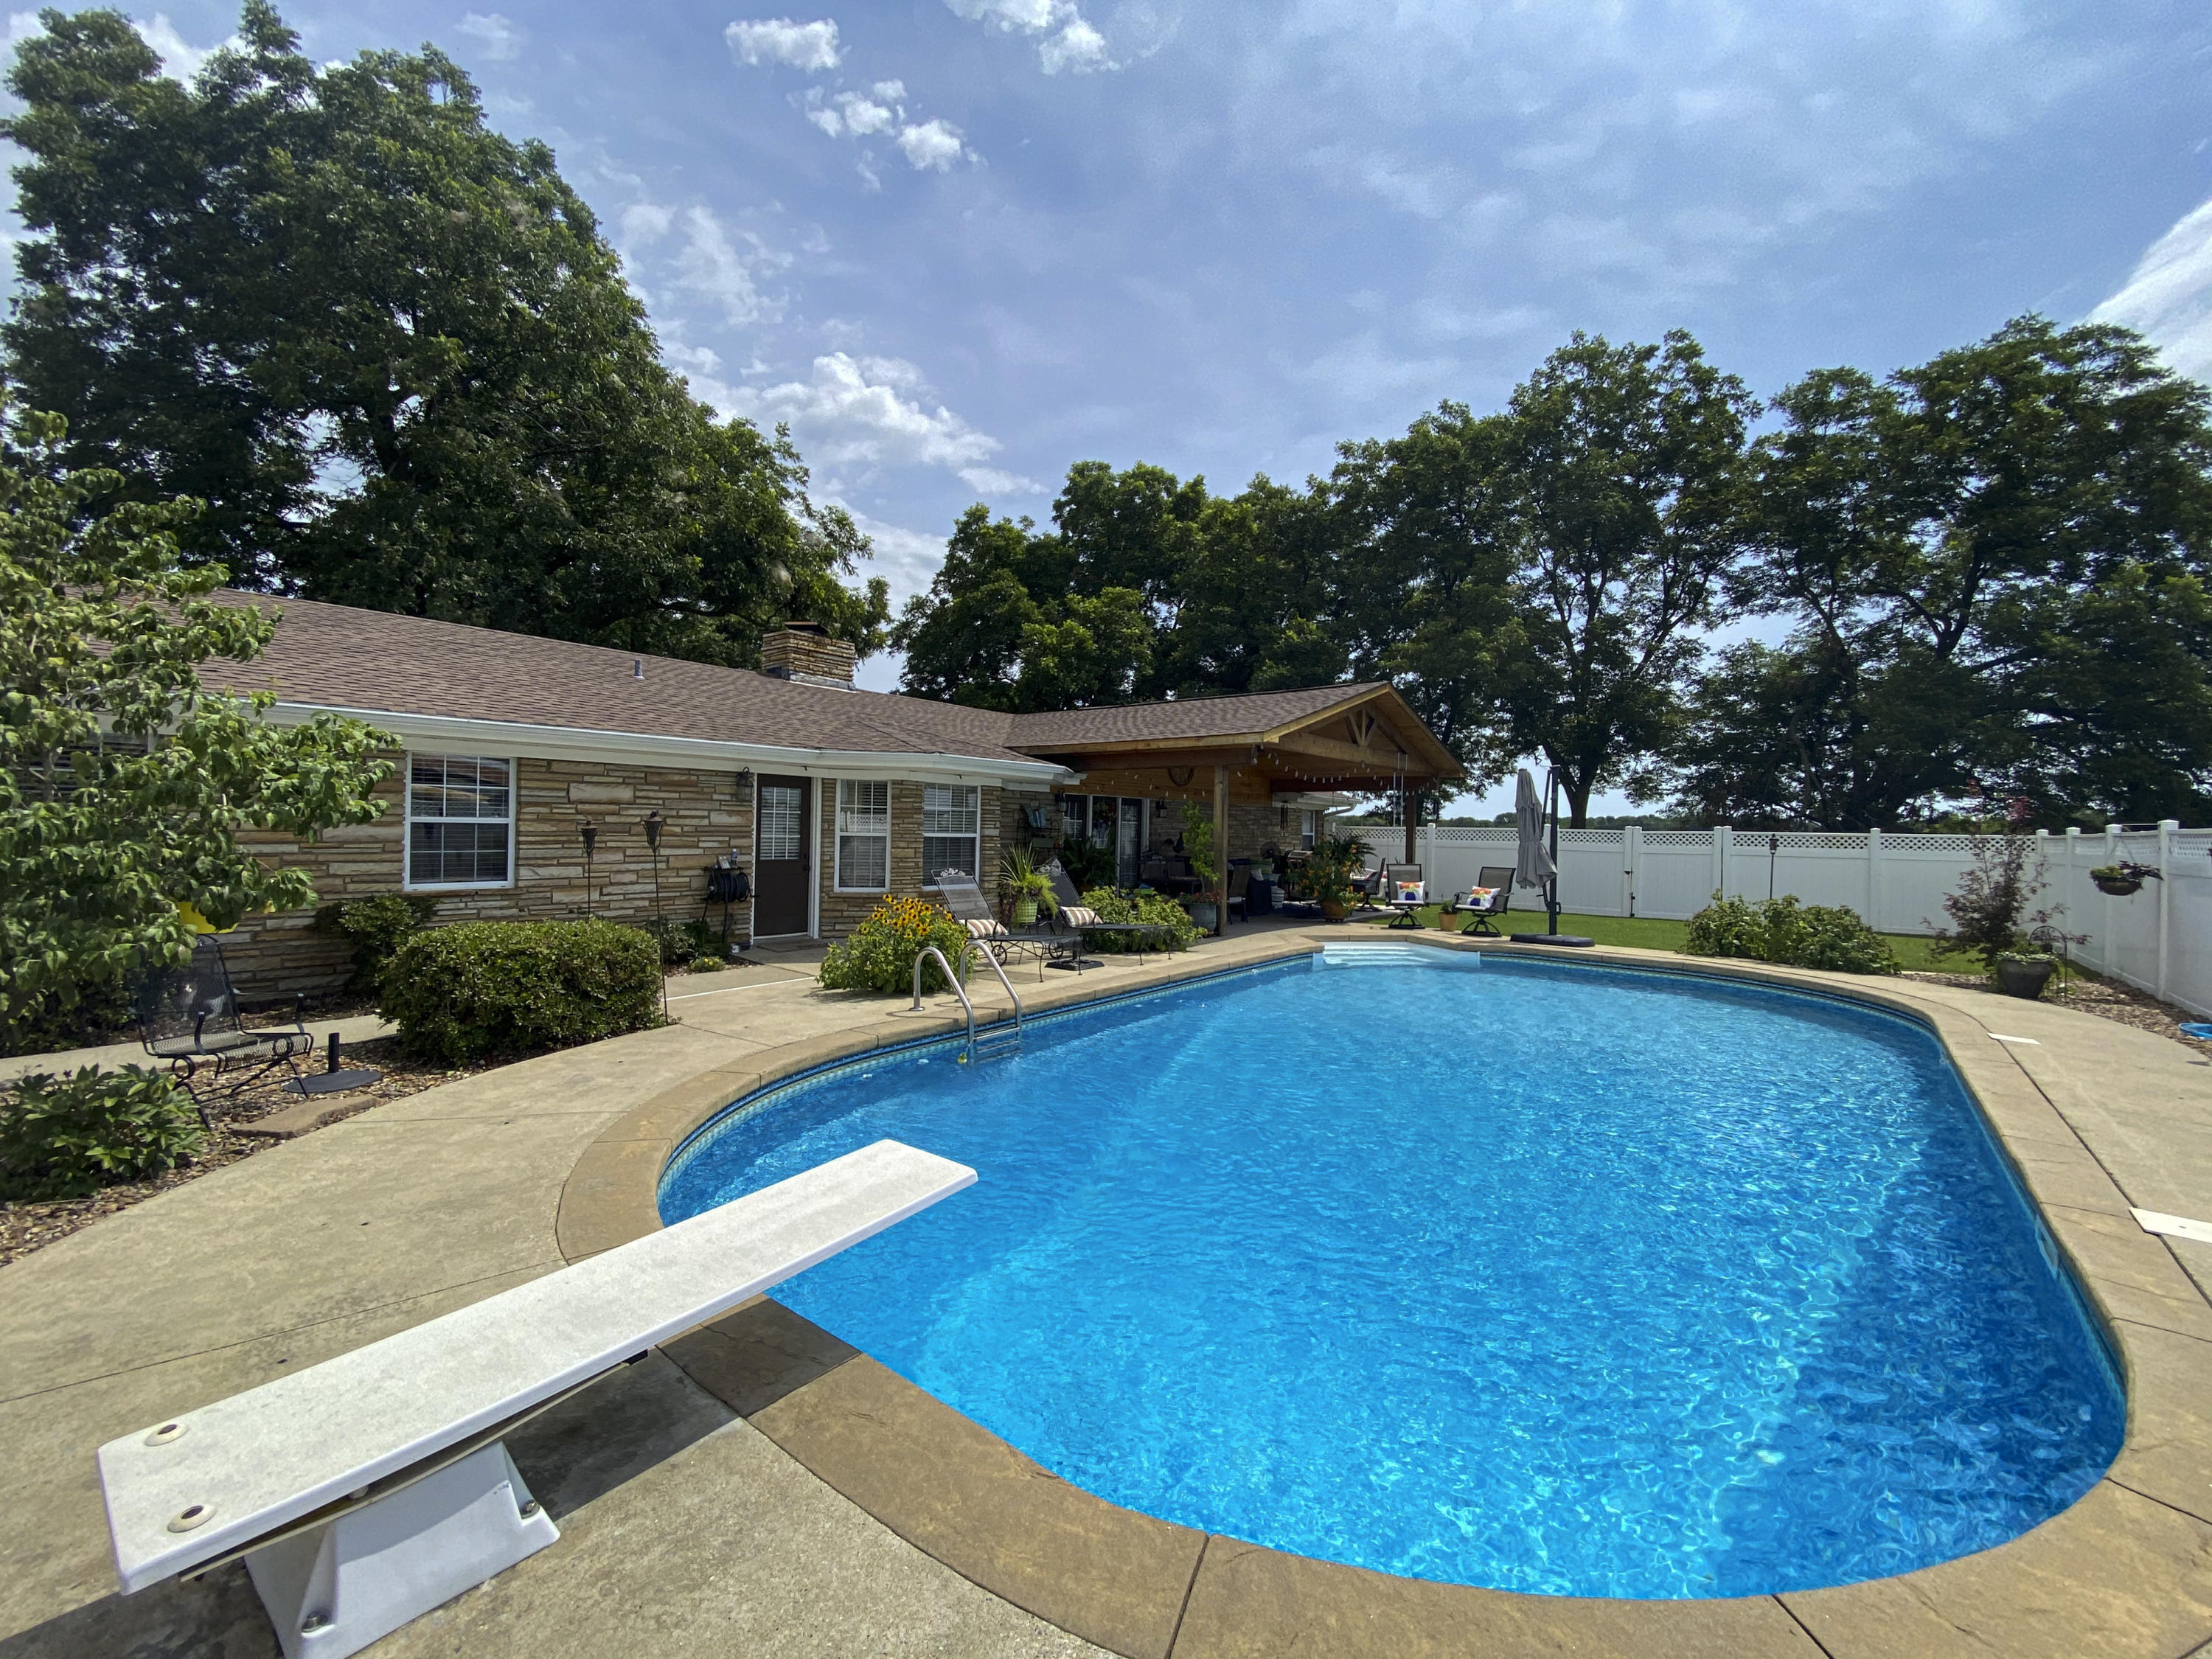 Large photo 2 of home for sale at 1437 Hudson Road, Pottsville, AR